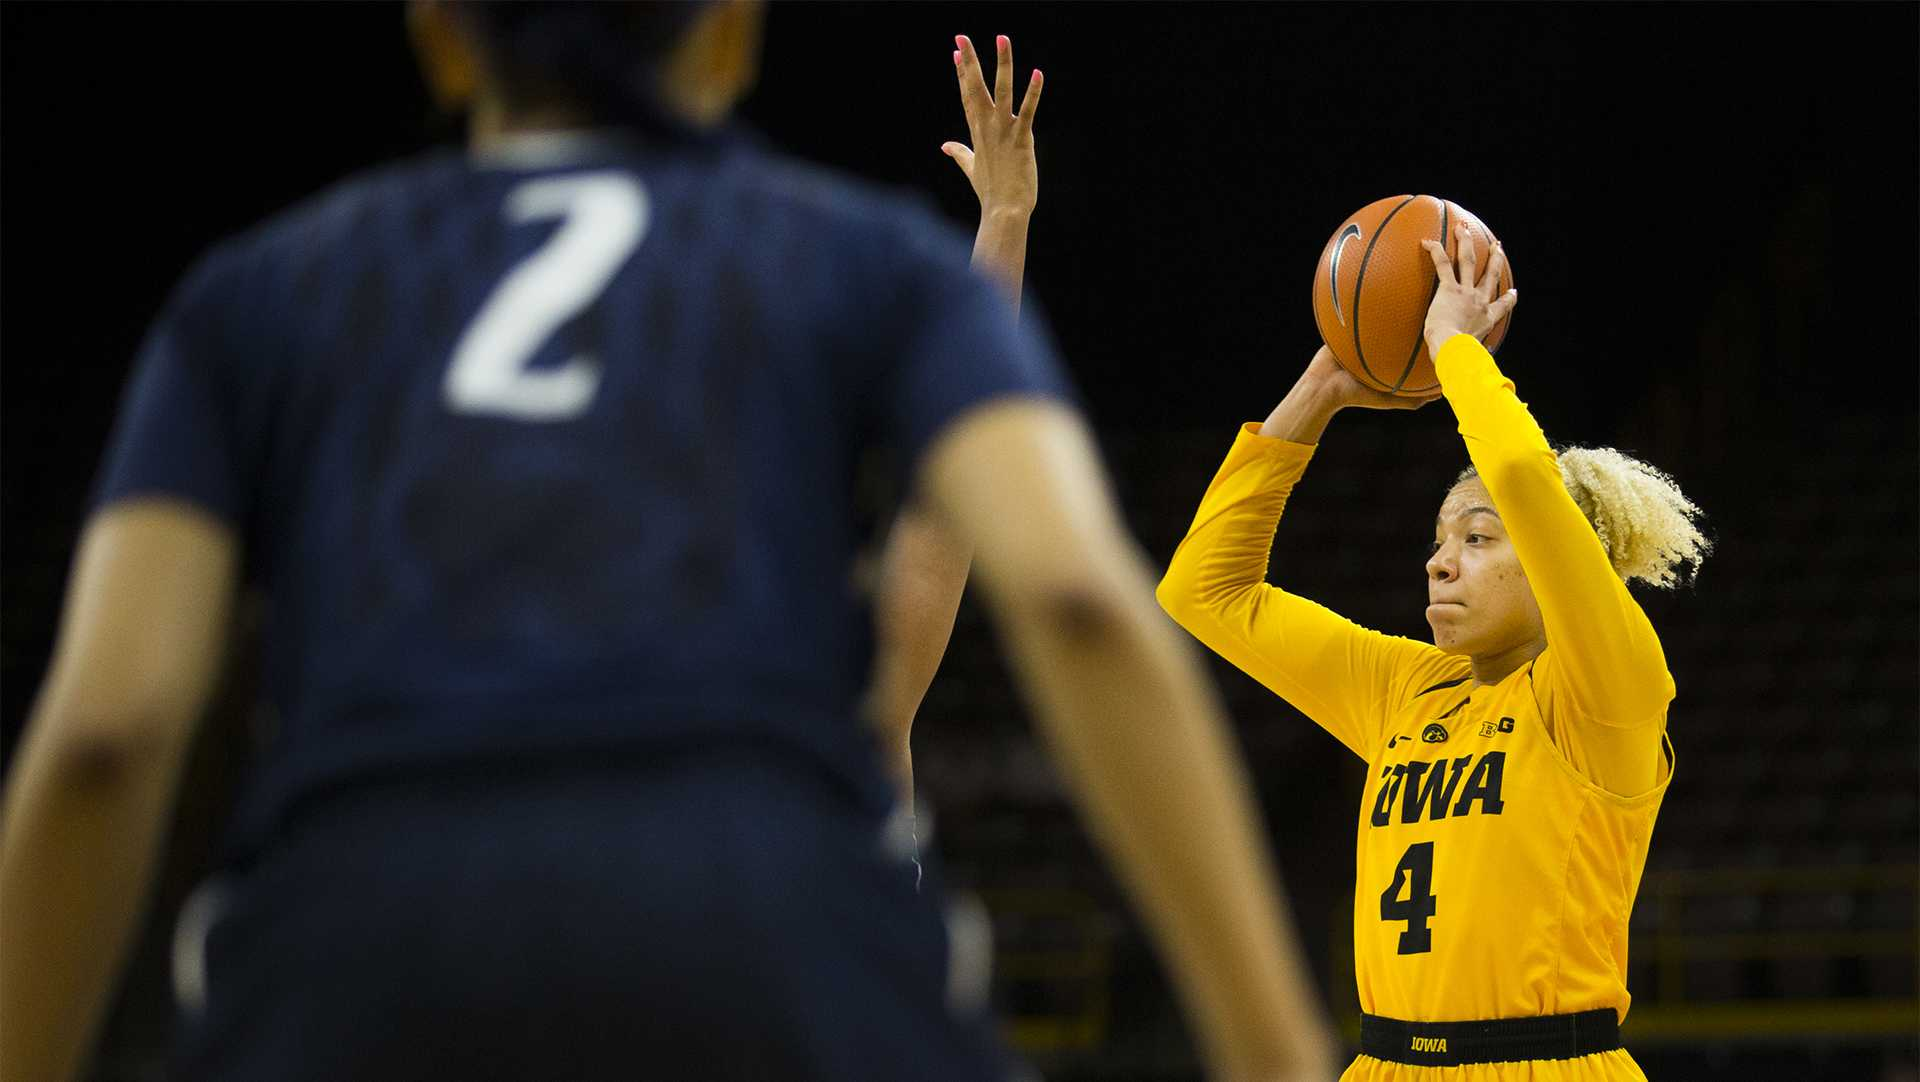 Iowa forward Chase Coley looks to pass the ball during the Iowa/Penn State basketball game at Carver-Hawkeye Arena on Thursday, Feb. 8, 2018. The Hawkeyes defeated the Nittany Lions, 80-76.  (Lily Smith/The Daily Iowan)